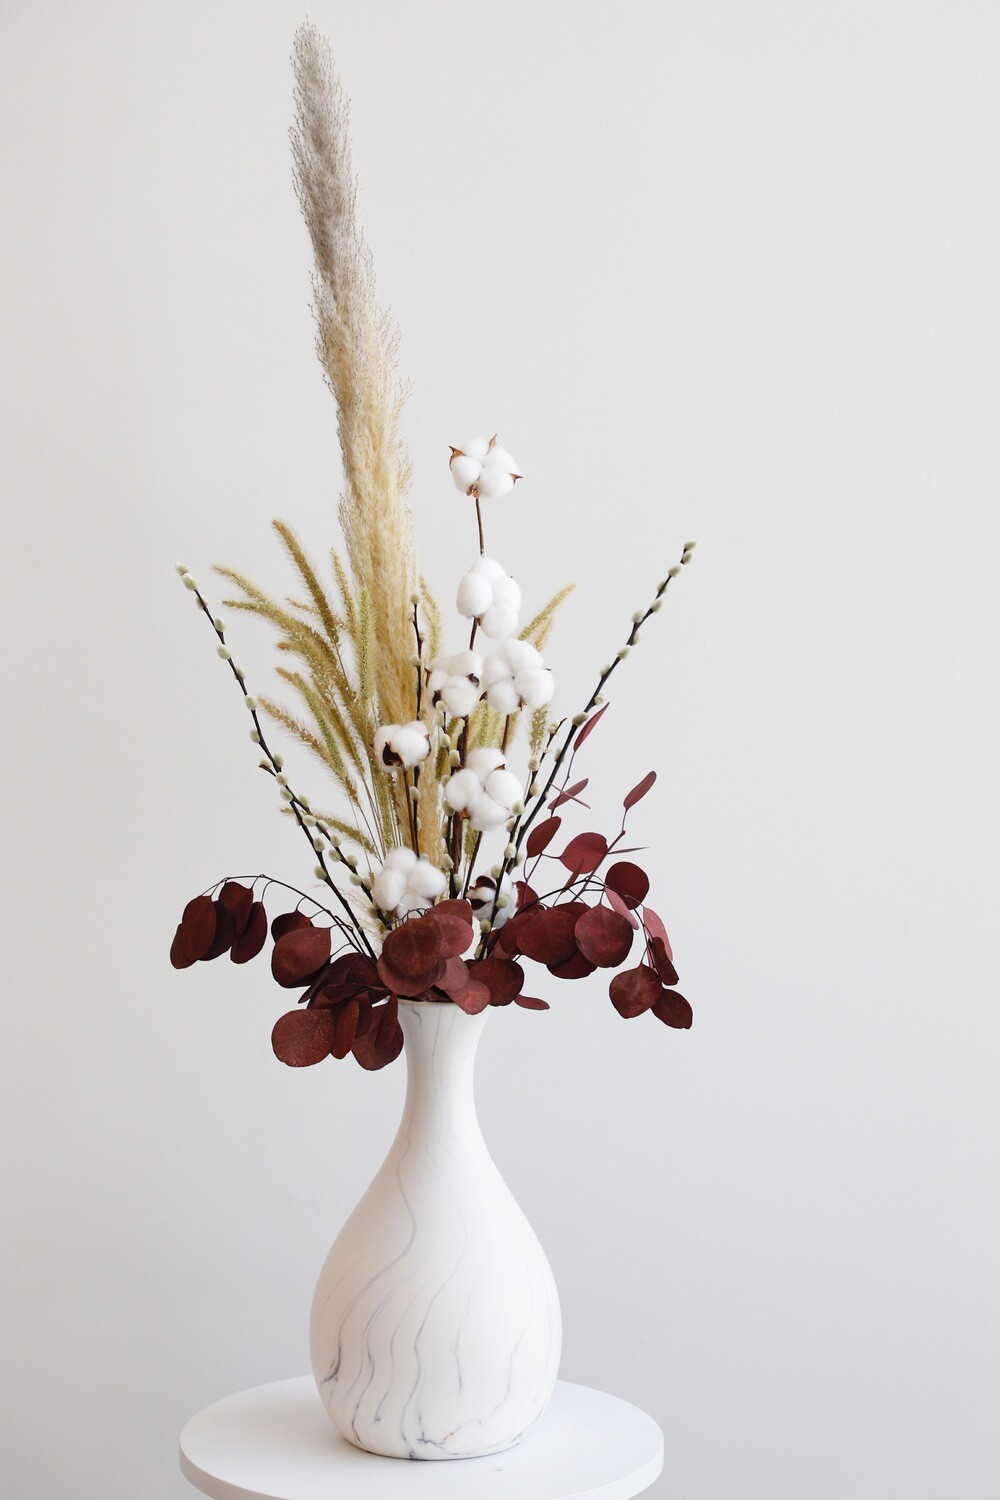 Dry Flowers Arrangement With Marble Vase